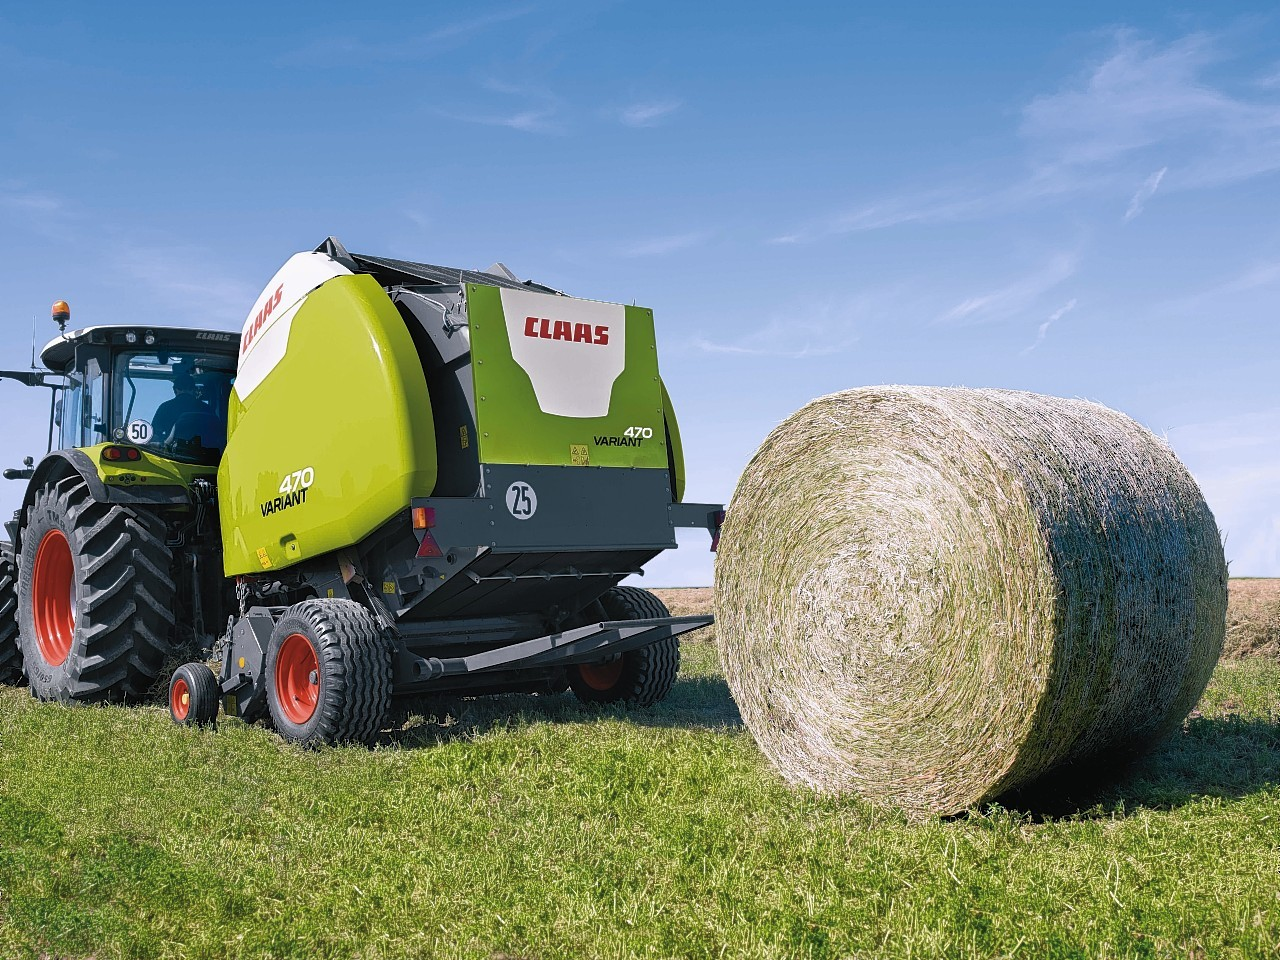 One of the new balers in action